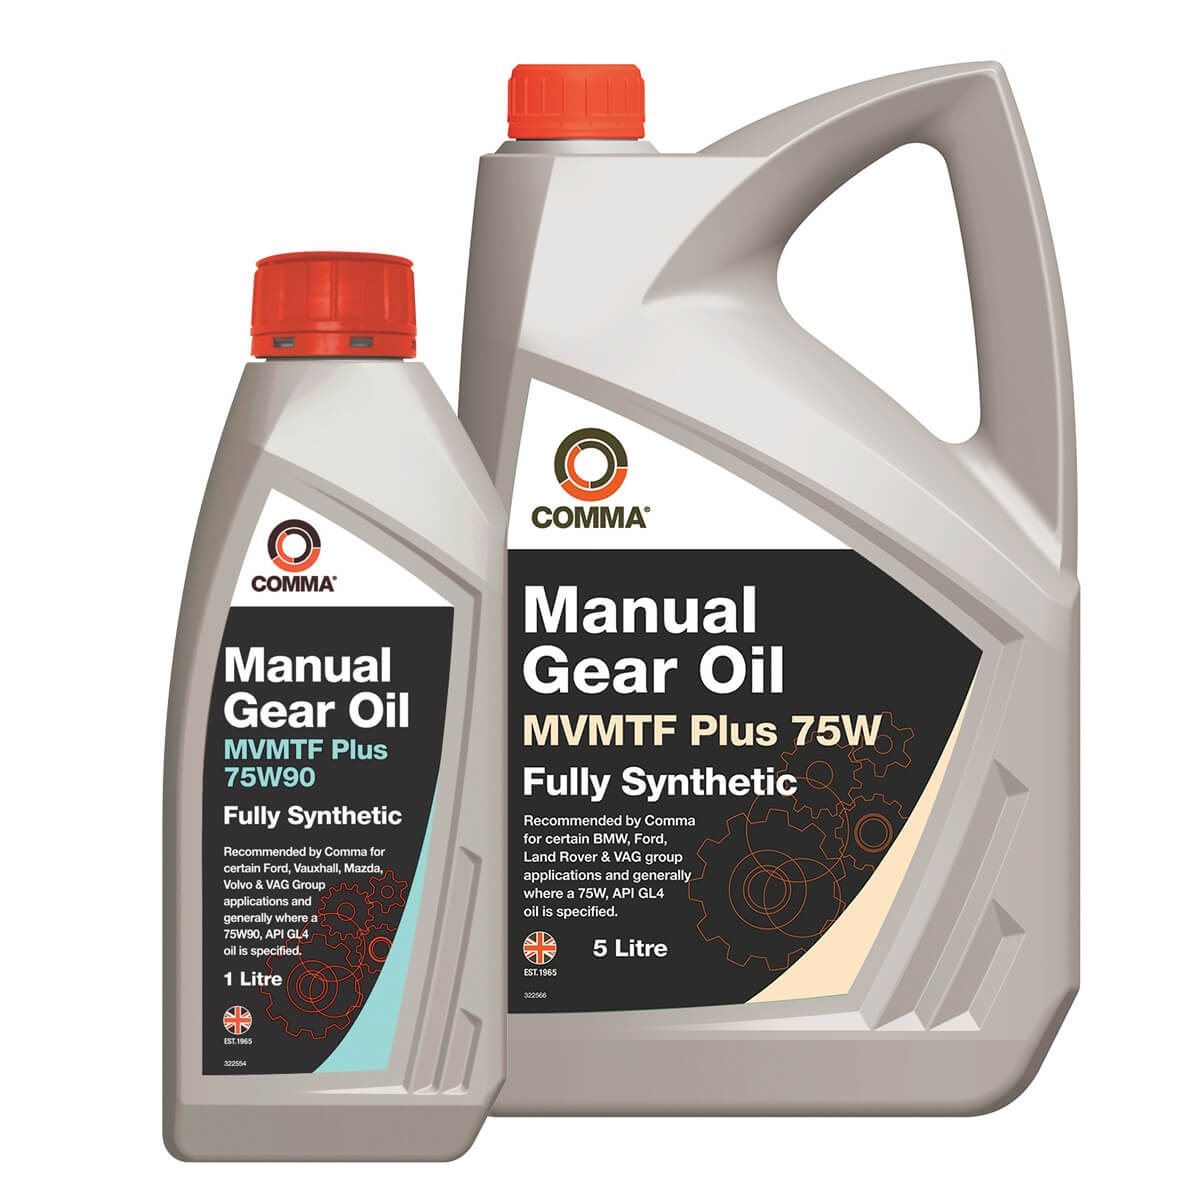 AUDI S5 Manual Transmission Oil